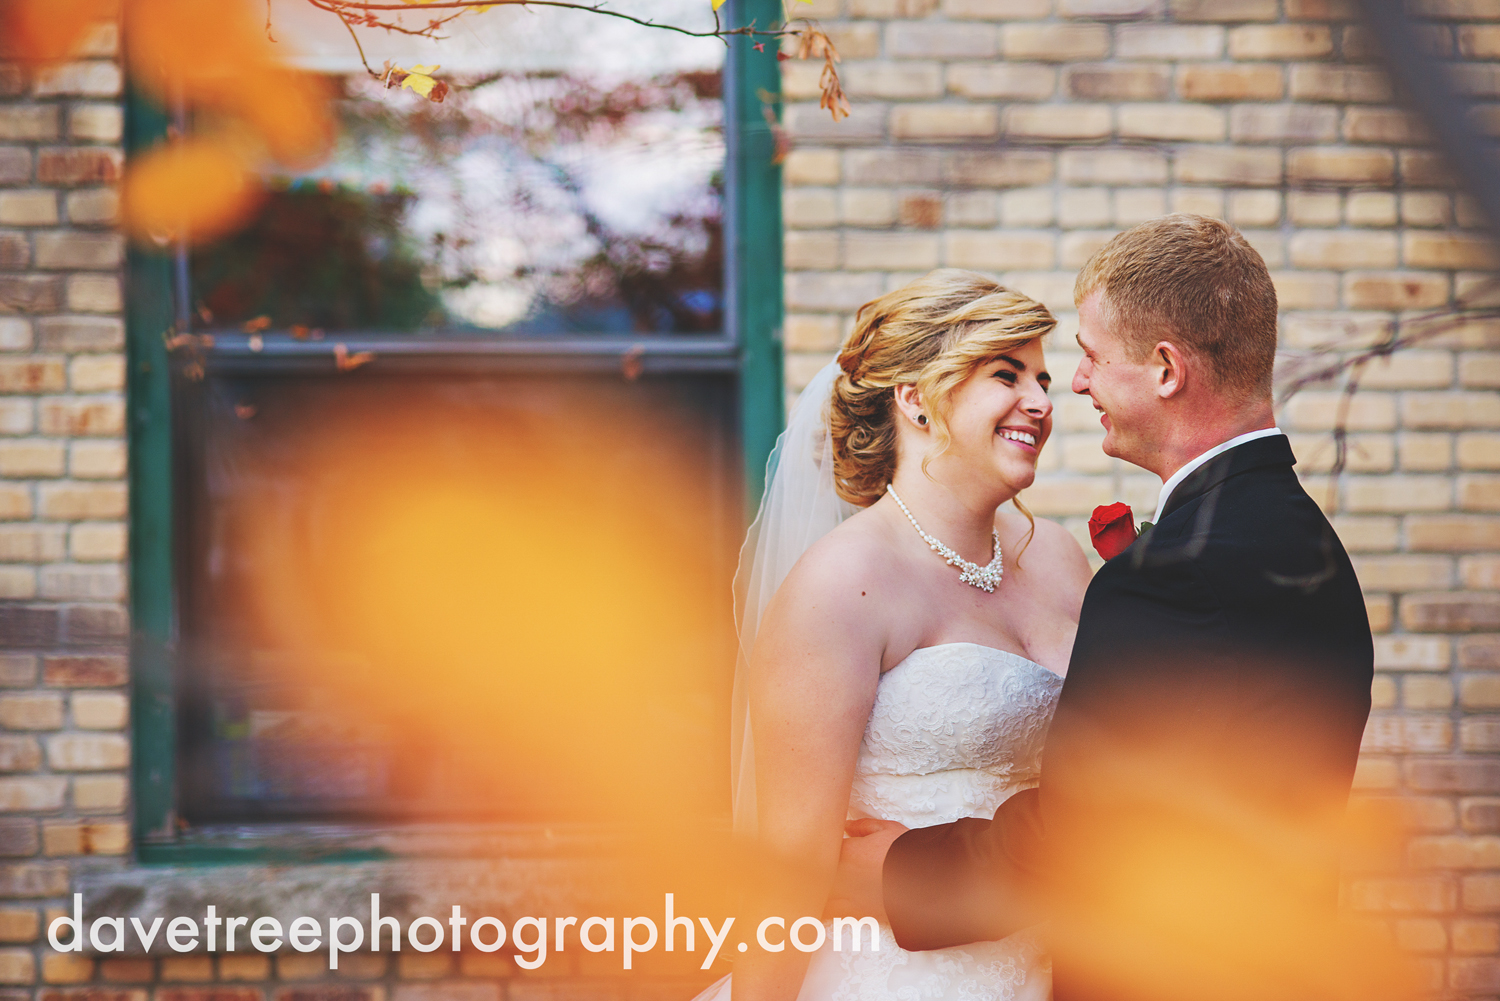 holland_wedding_photographer_25.jpg